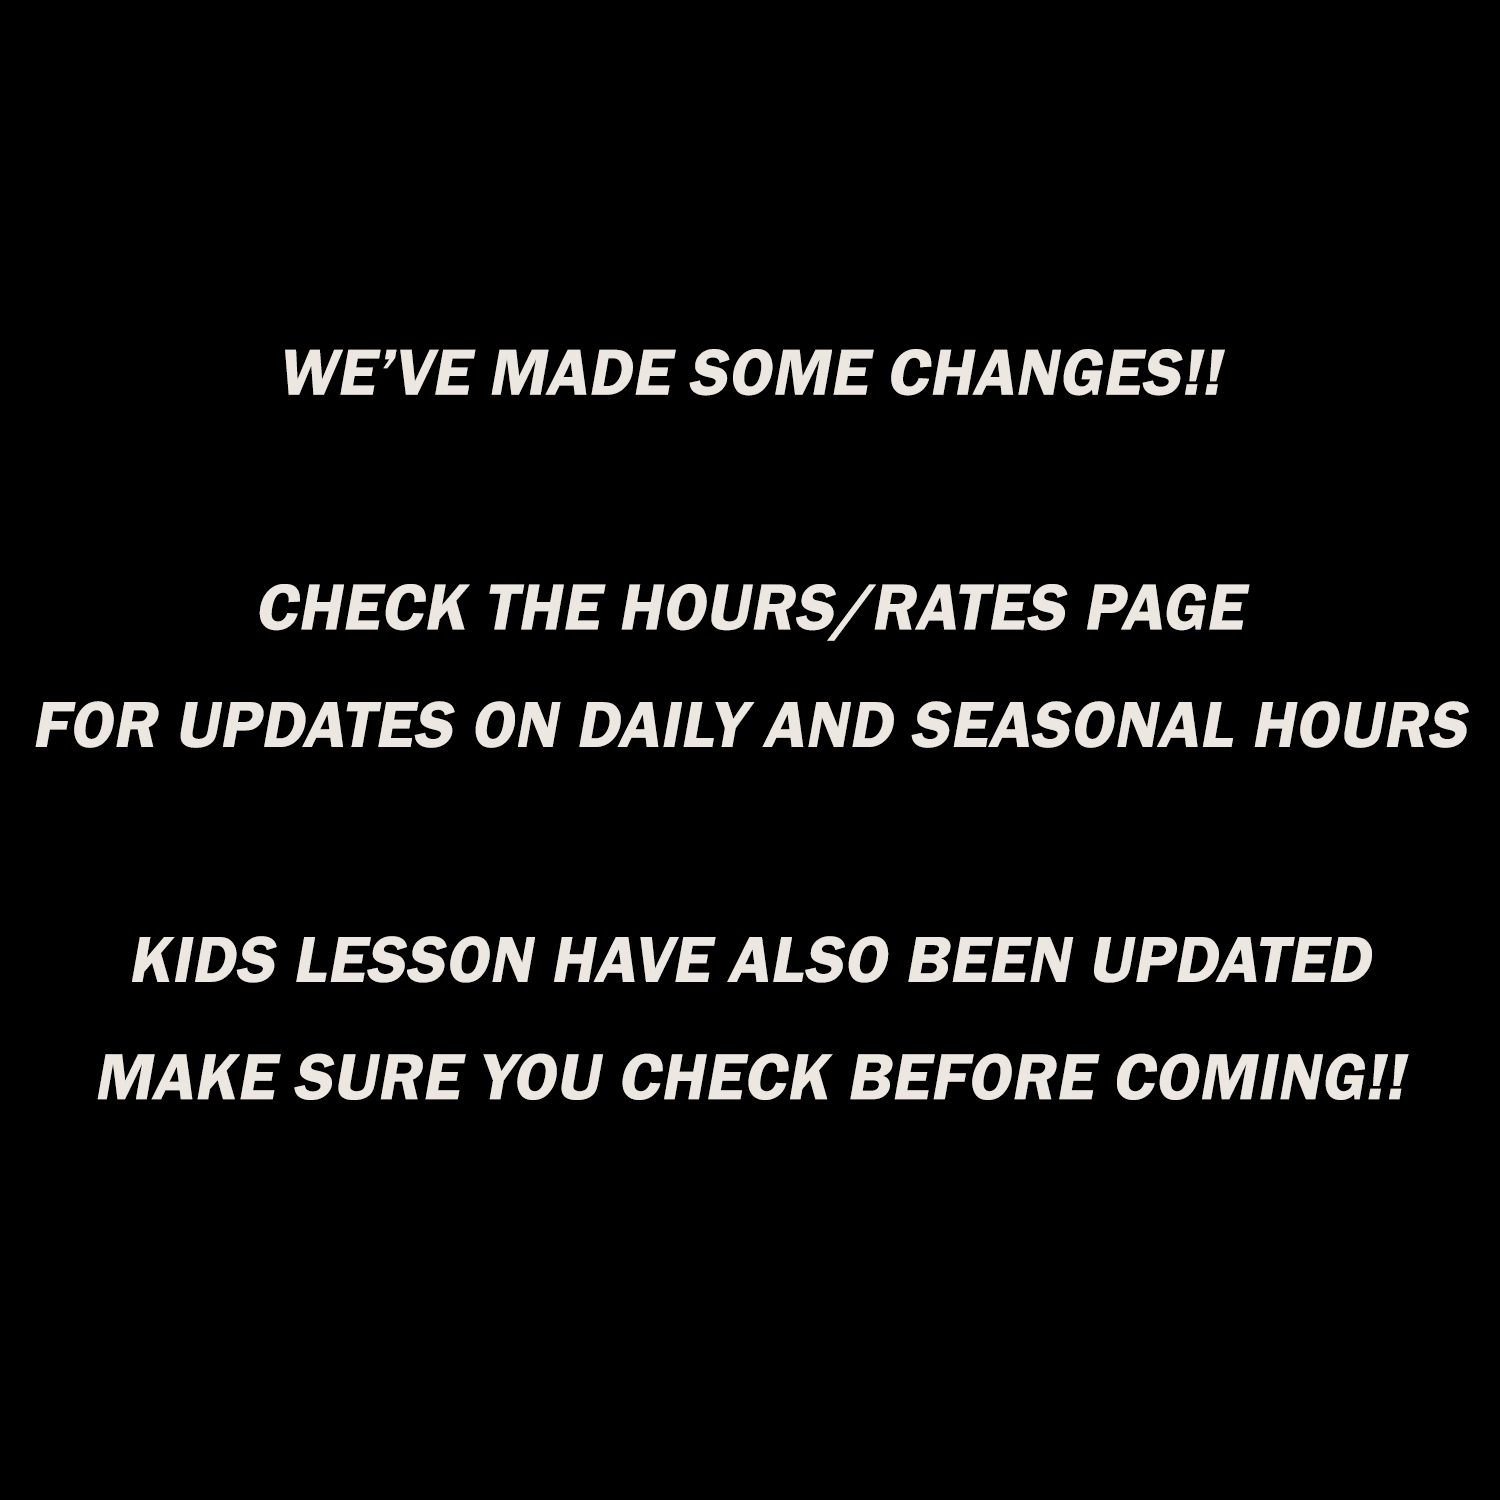 New Hours and Rates!!